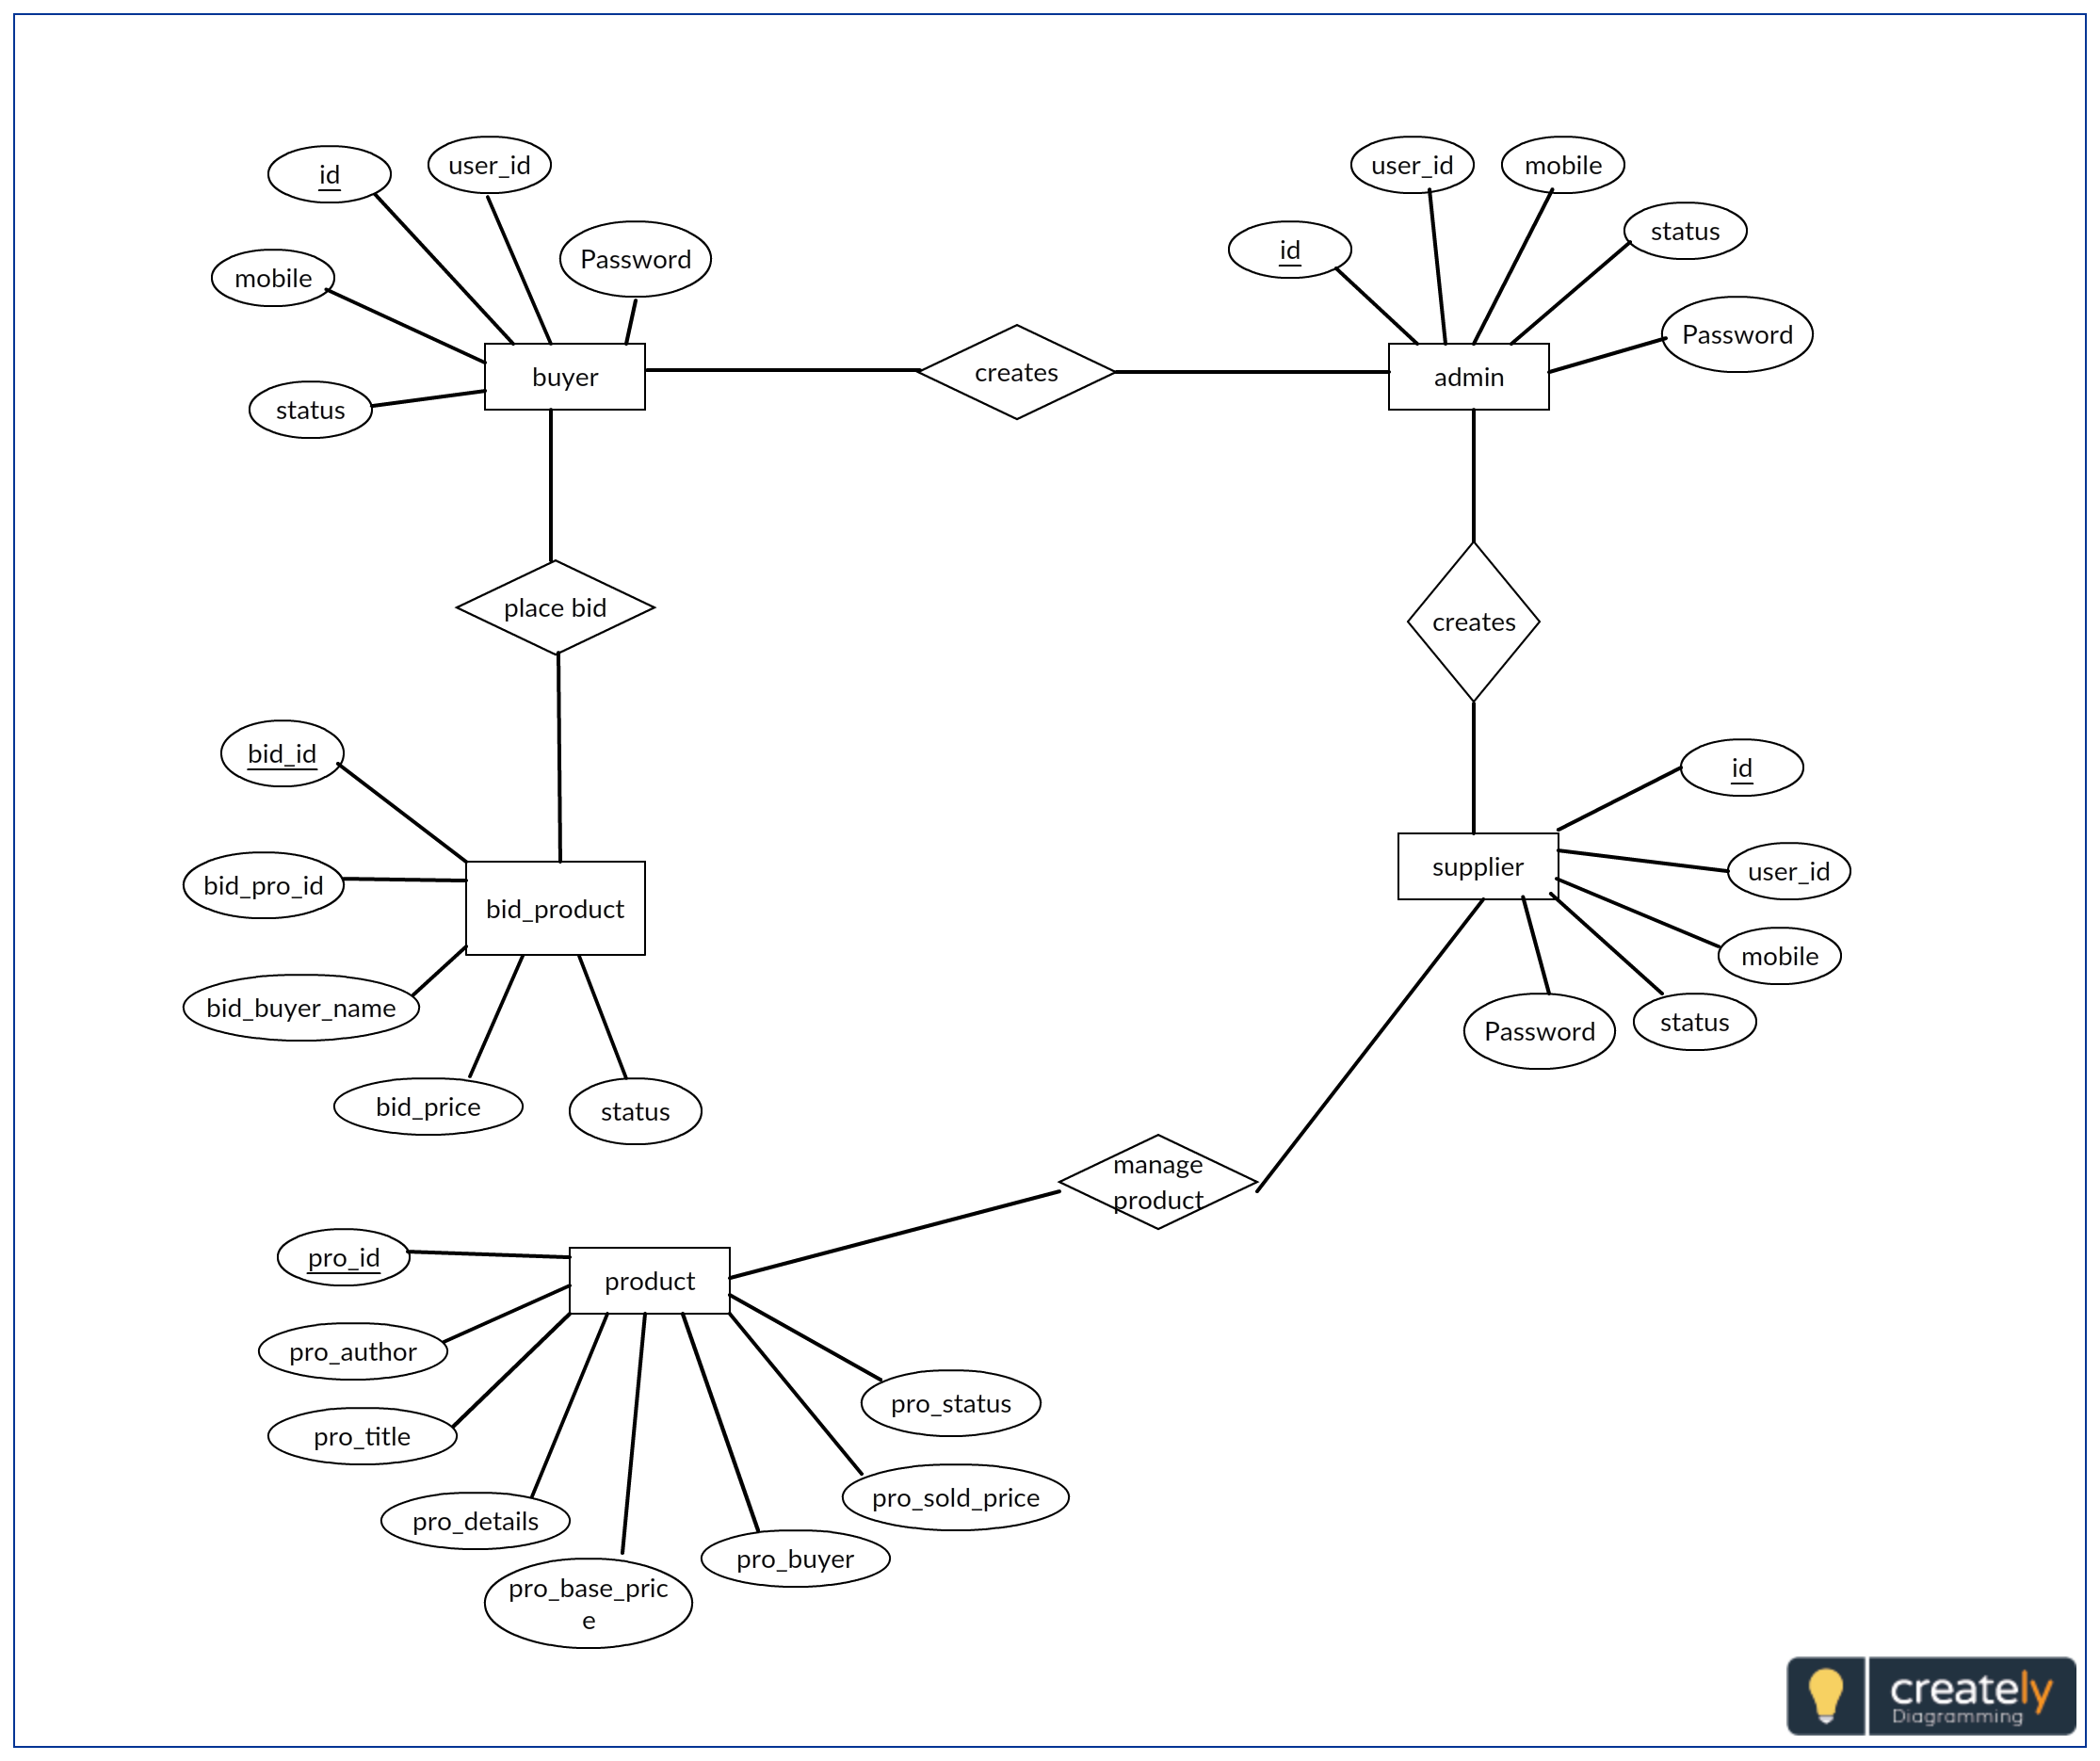 small resolution of entity relationship diagram example for auctioning system click on the image to edit online and